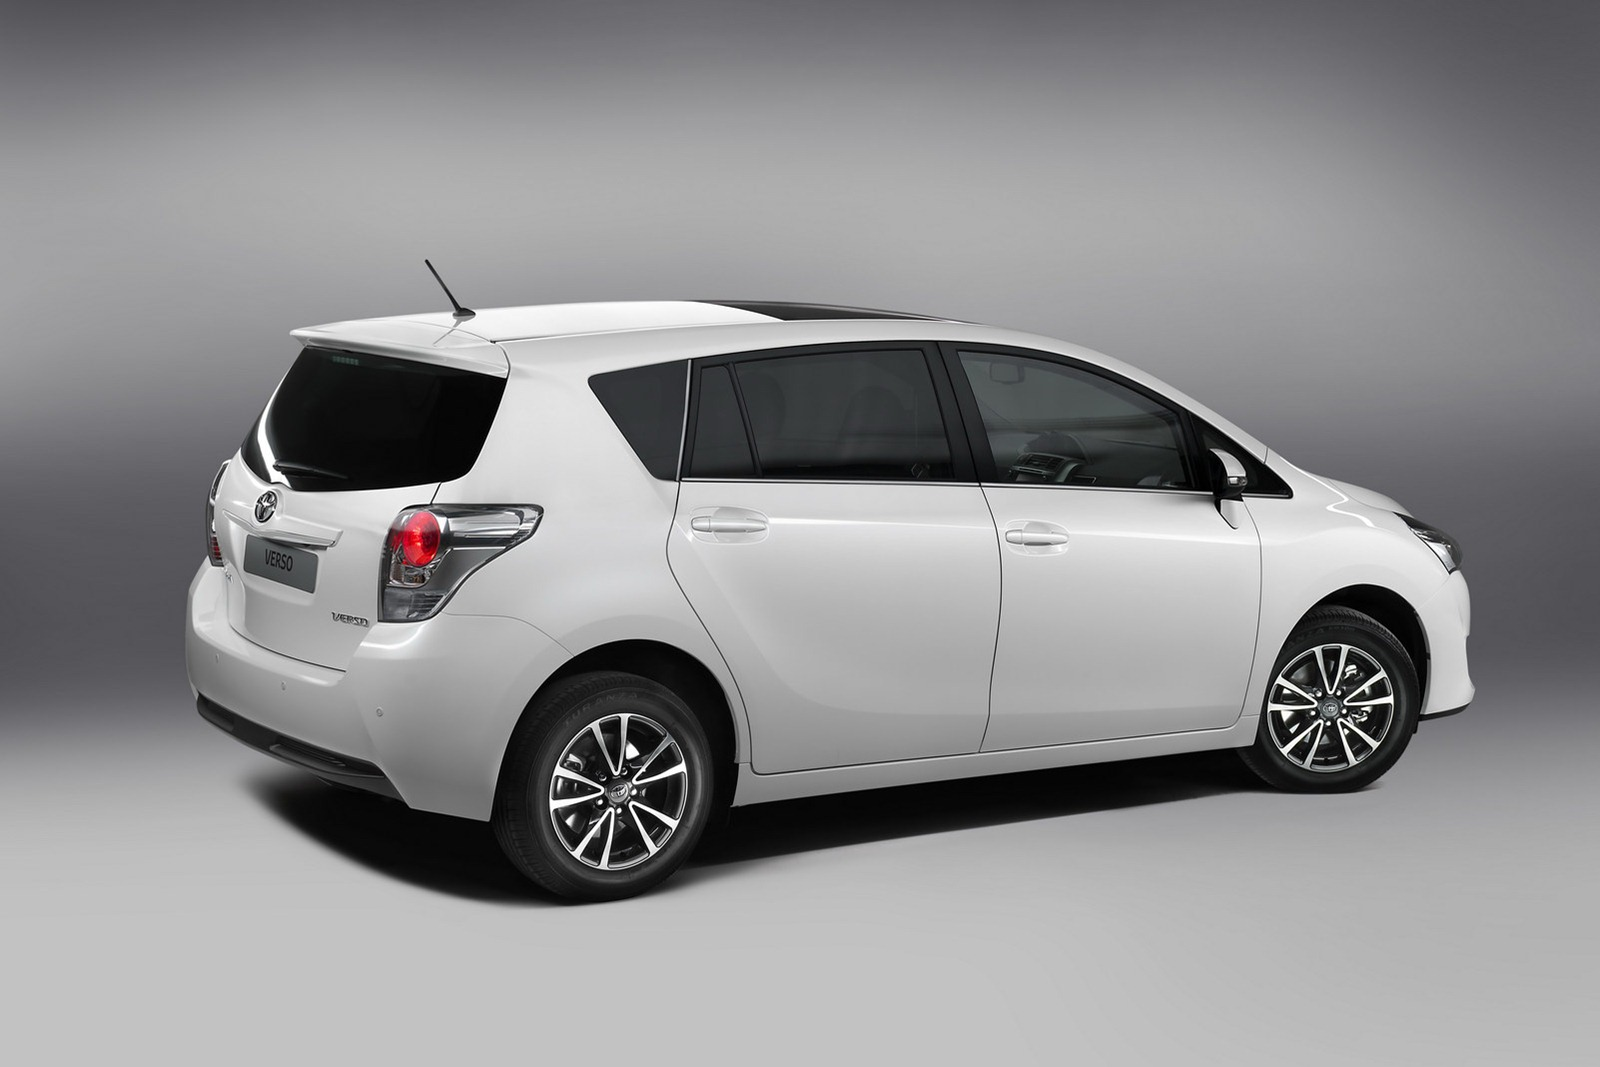 2013 Toyota Verso Mpv Gets A Facelift Autoevolution